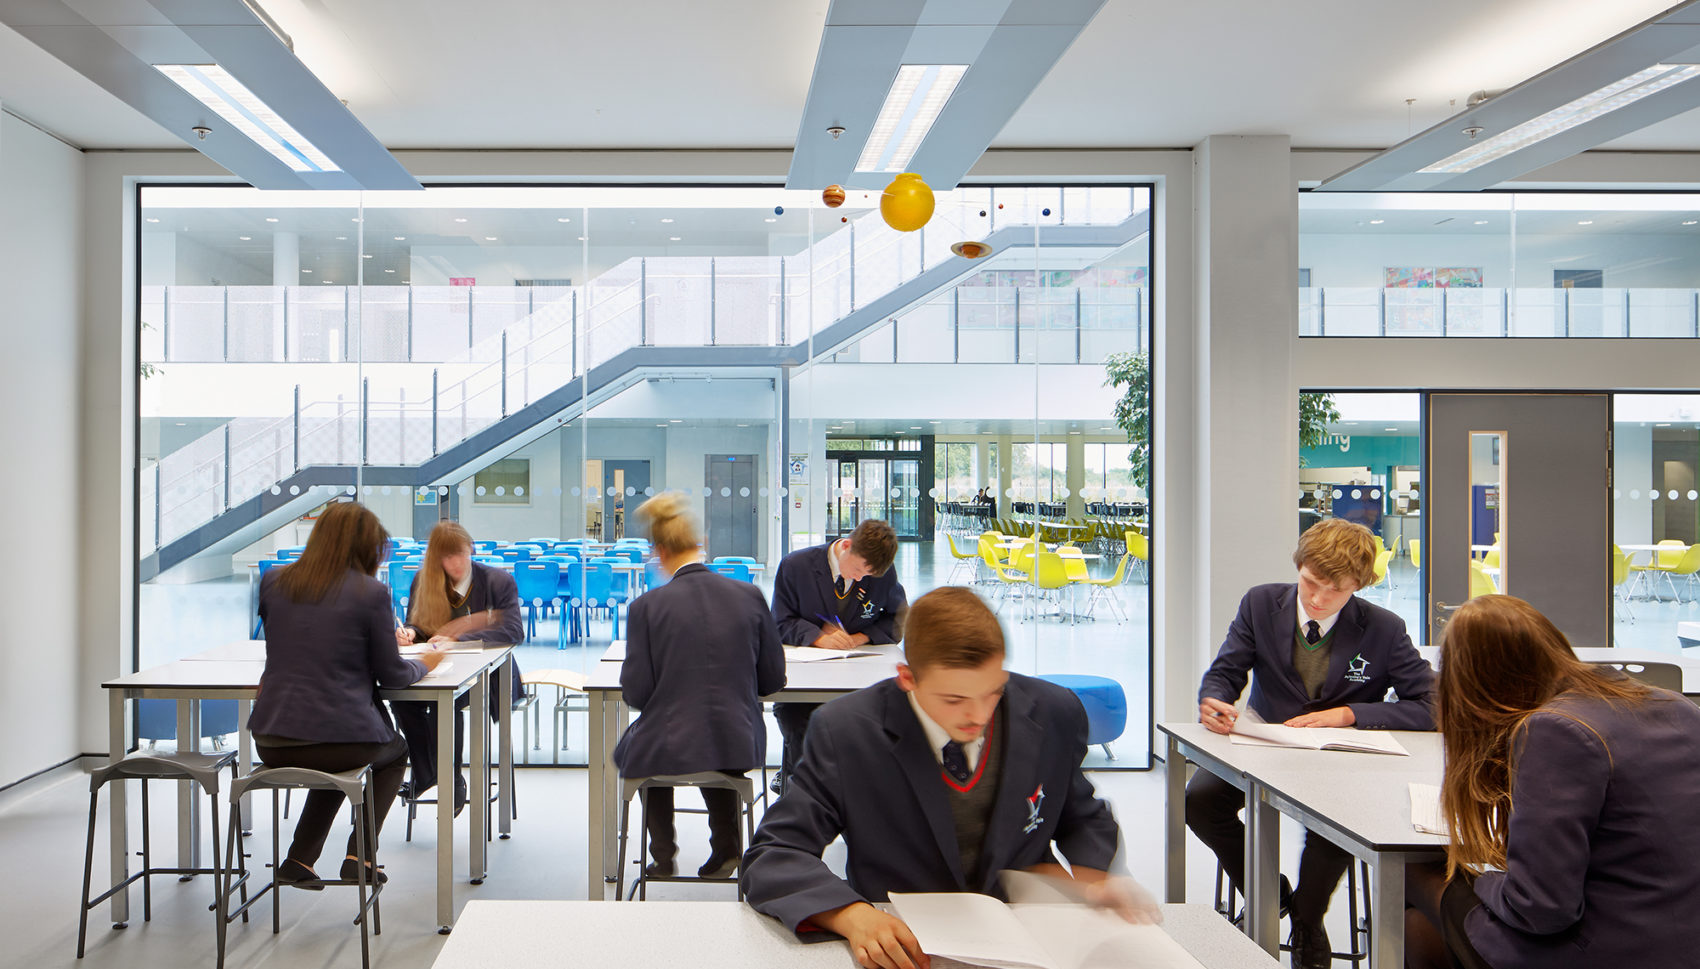 Aylesbury Vale Academy with Berryfields Primary